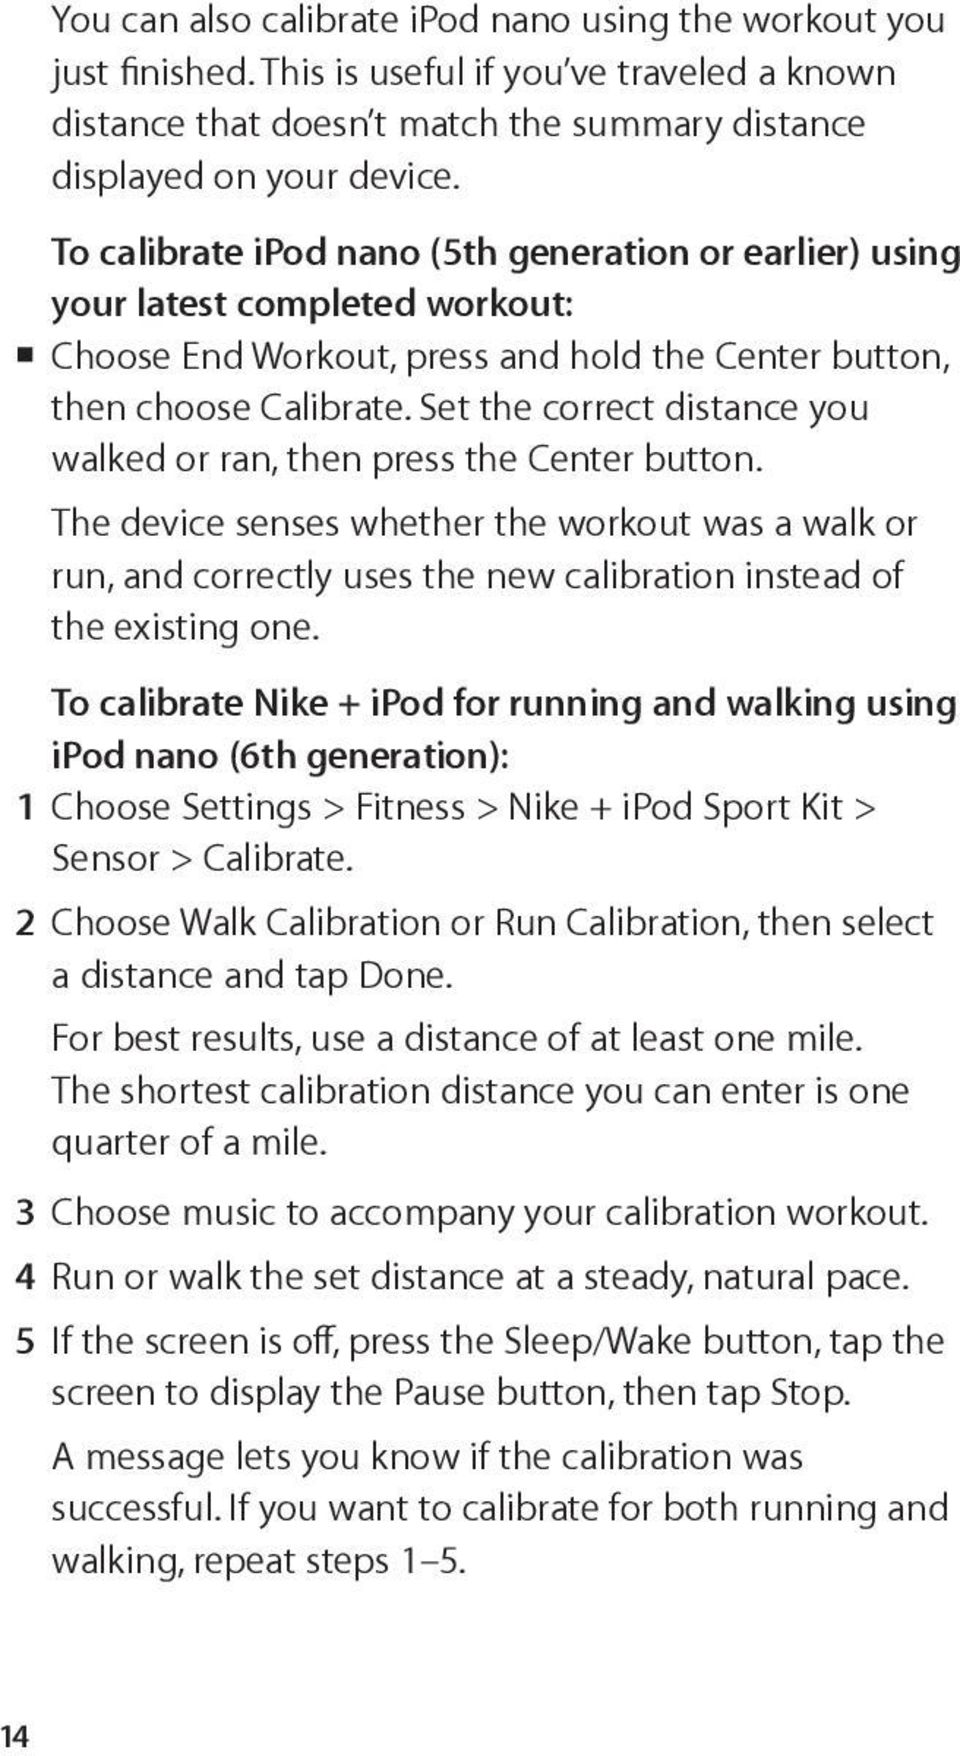 Set the correct distance you walked or ran, then press the Center button. The device senses whether the workout was a walk or run, and correctly uses the new calibration instead of the existing one.